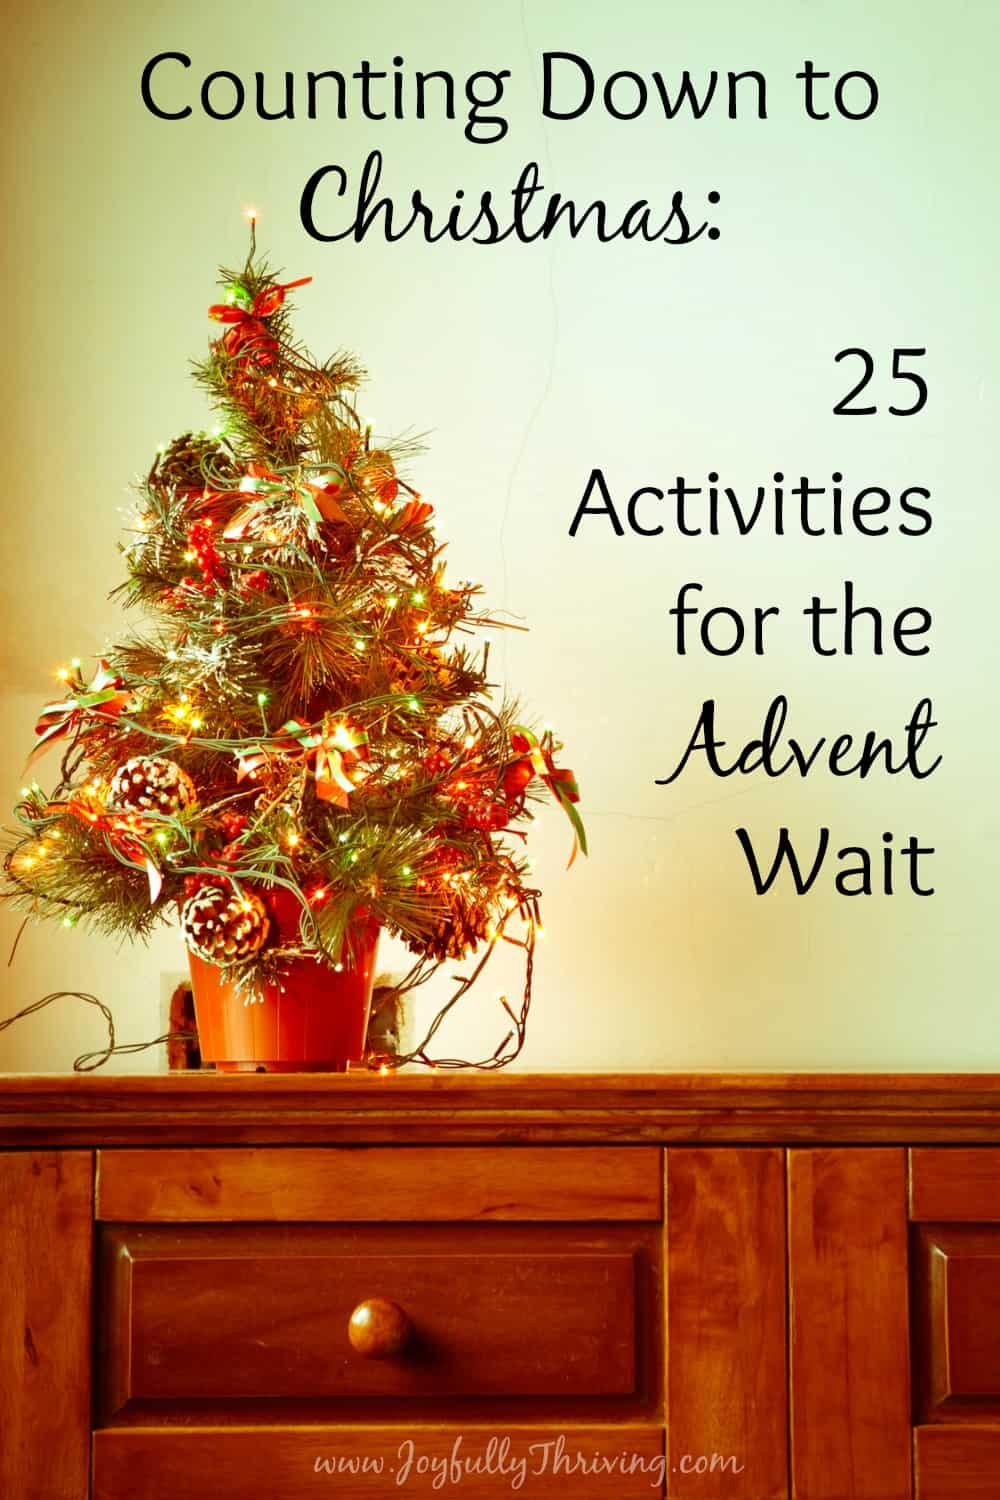 Counting Down to Christmas: Activities for the Wait